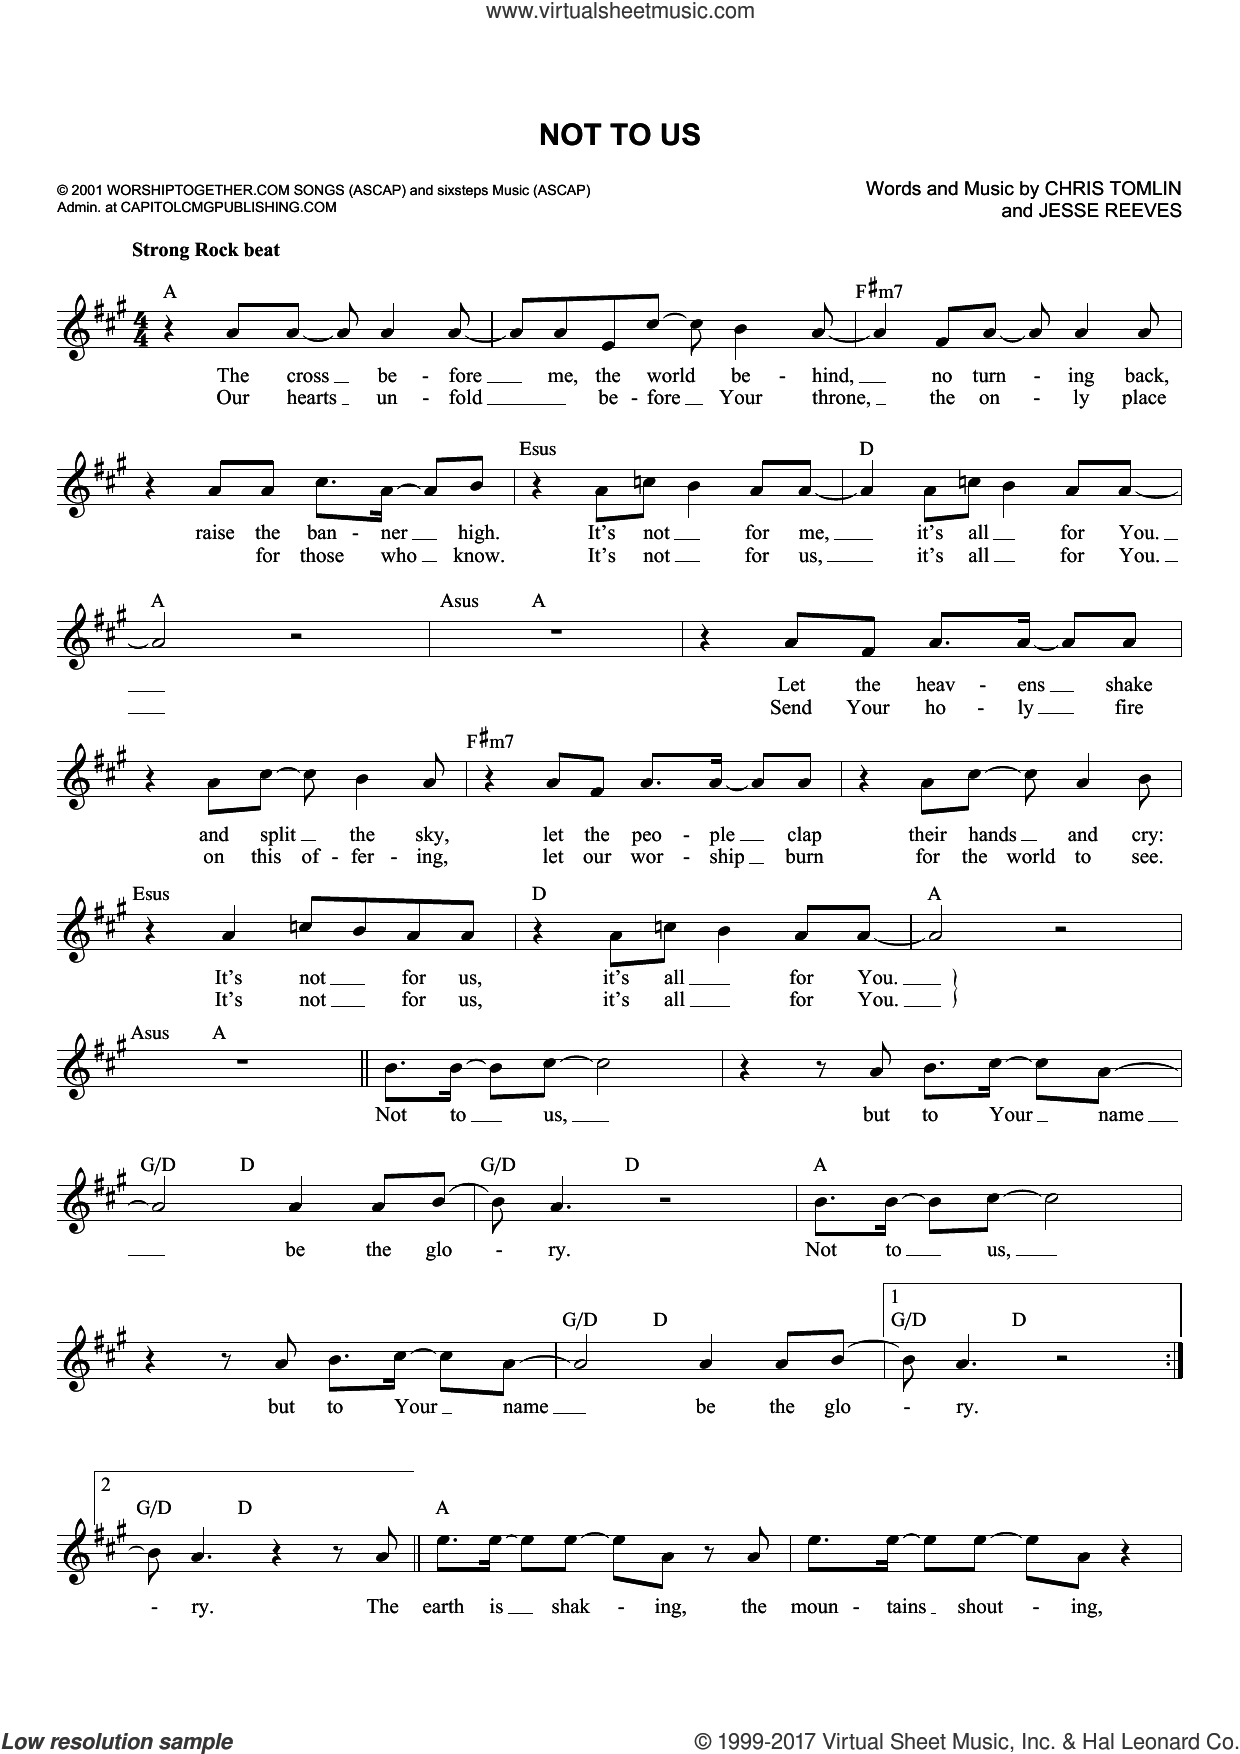 Not To Us sheet music for voice and other instruments (fake book) by Chris Tomlin and Jesse Reeves, intermediate skill level